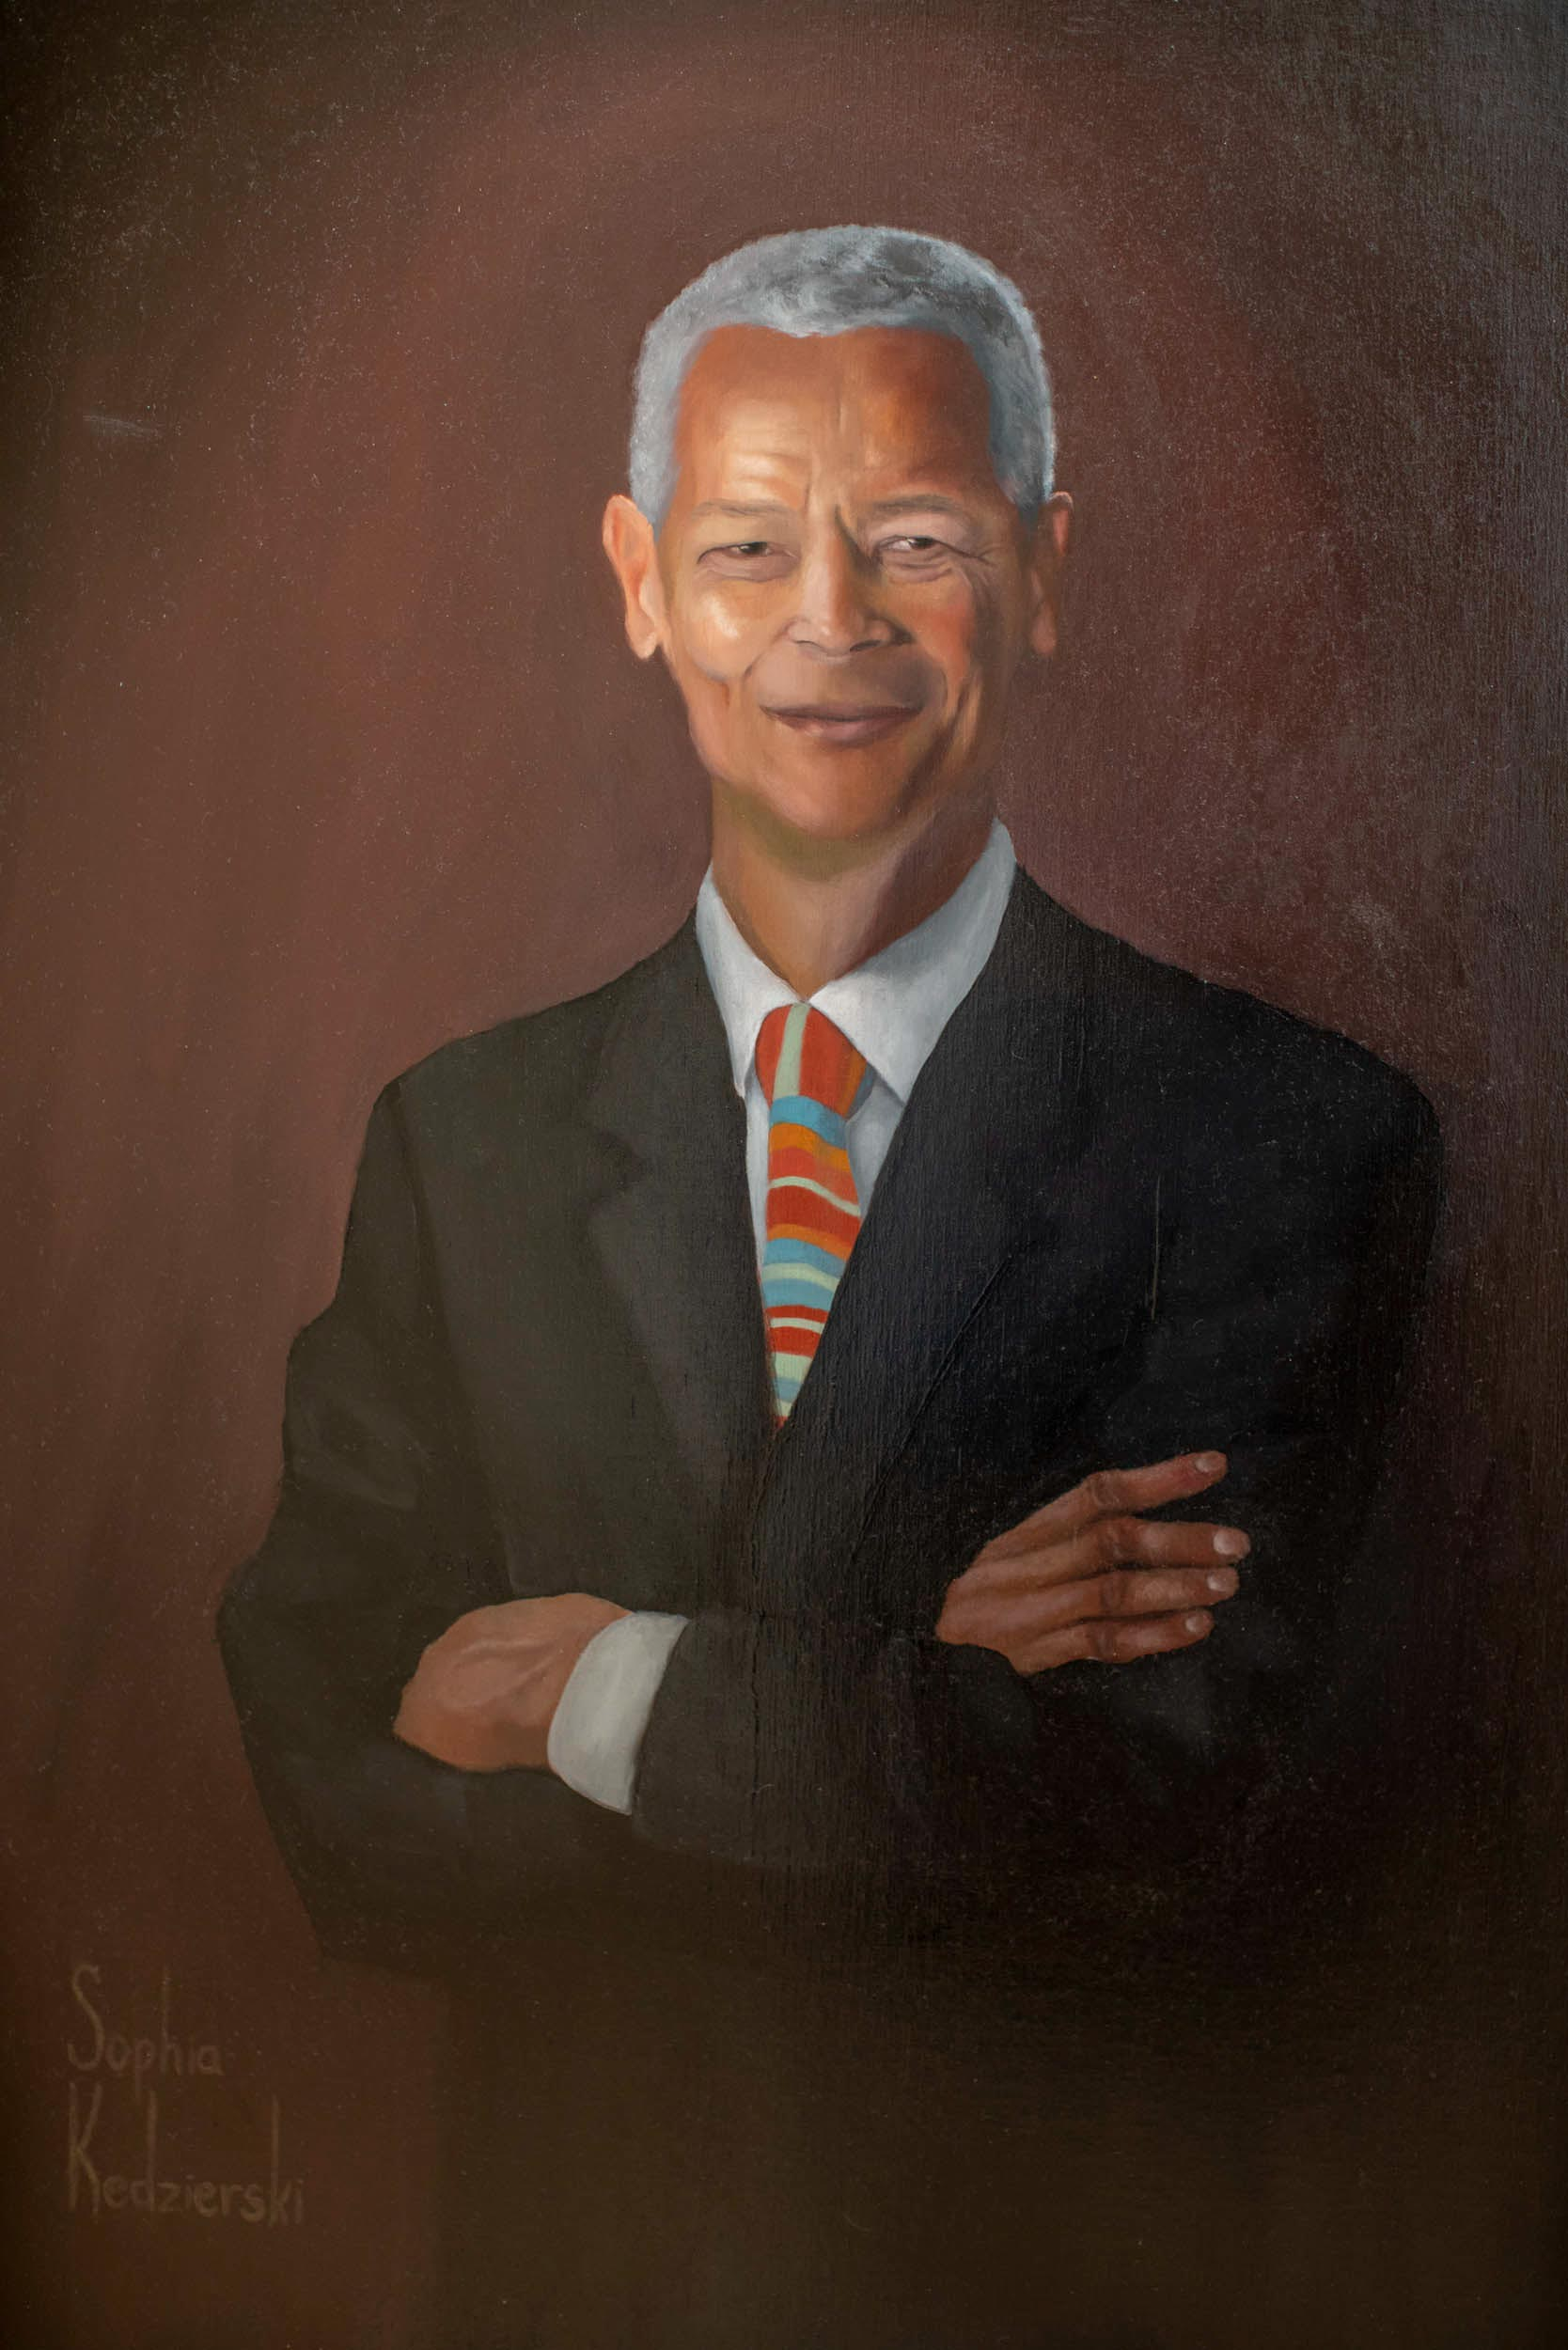 Civil rights champion Julian Bond taught at UVA for 20 years, and now his portrait will be displayed in the residence hall named after him.